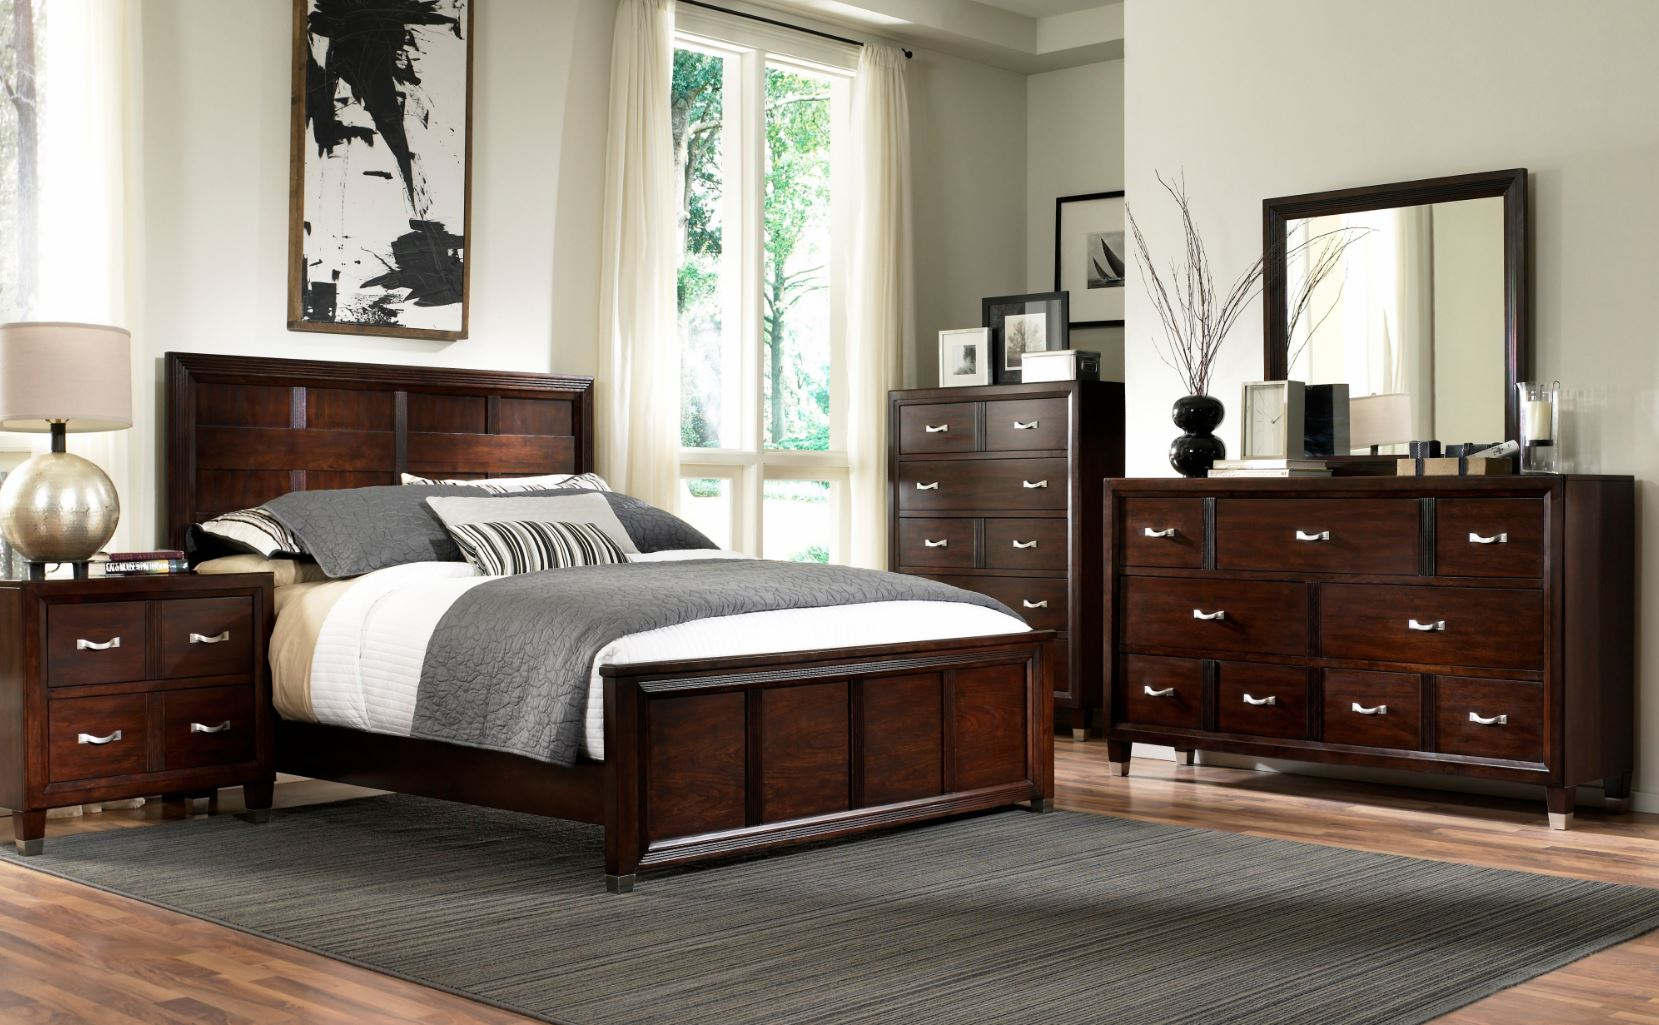 Broyhill furniture quality craftsmanship remarkable for Broyhill furniture